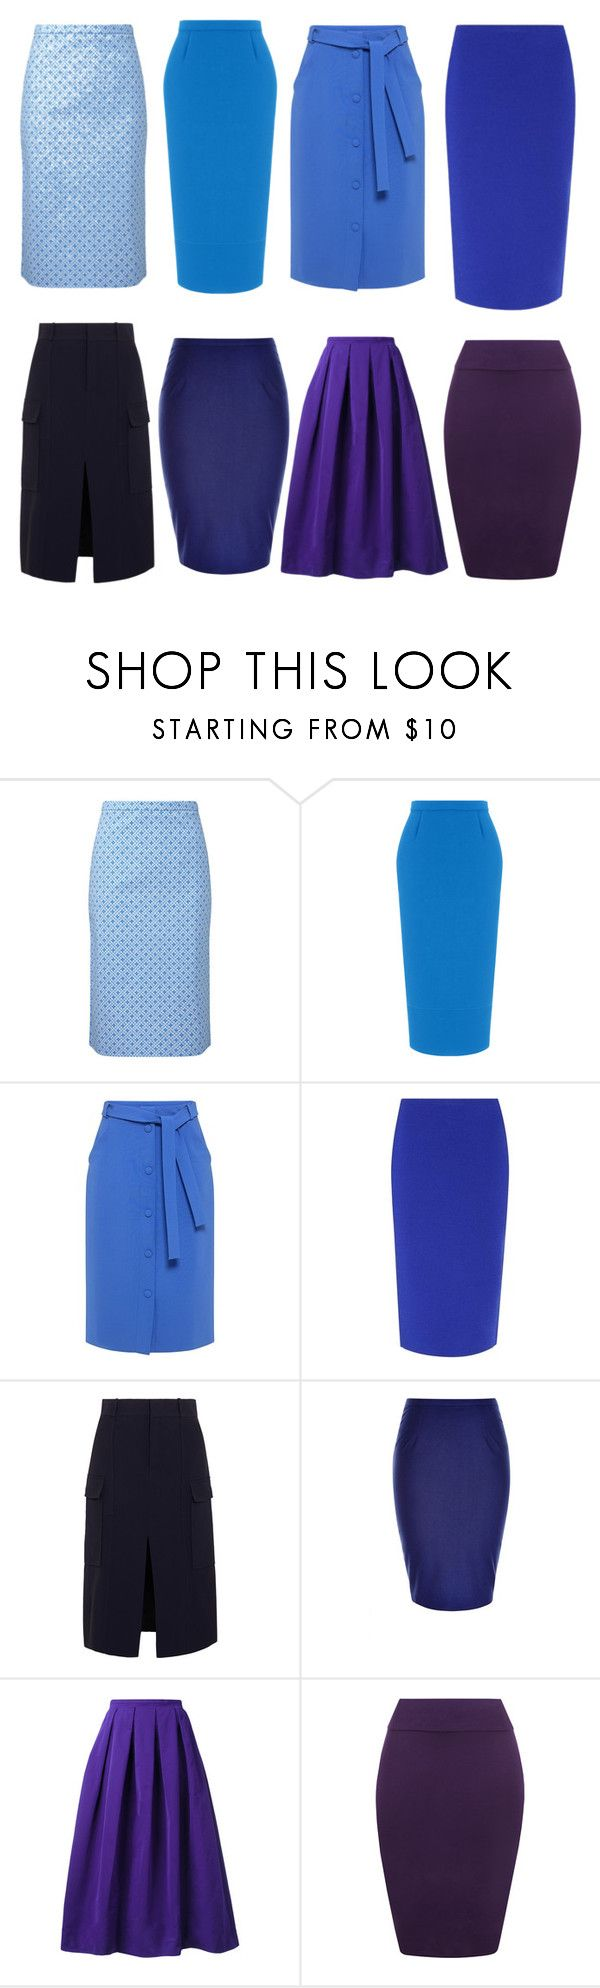 """""""юбки синие"""" by tamaraatma on Polyvore featuring Roland Mouret, Mother of Pearl, Diane Von Furstenberg, Chloé, City Chic, Rochas and WearAll"""